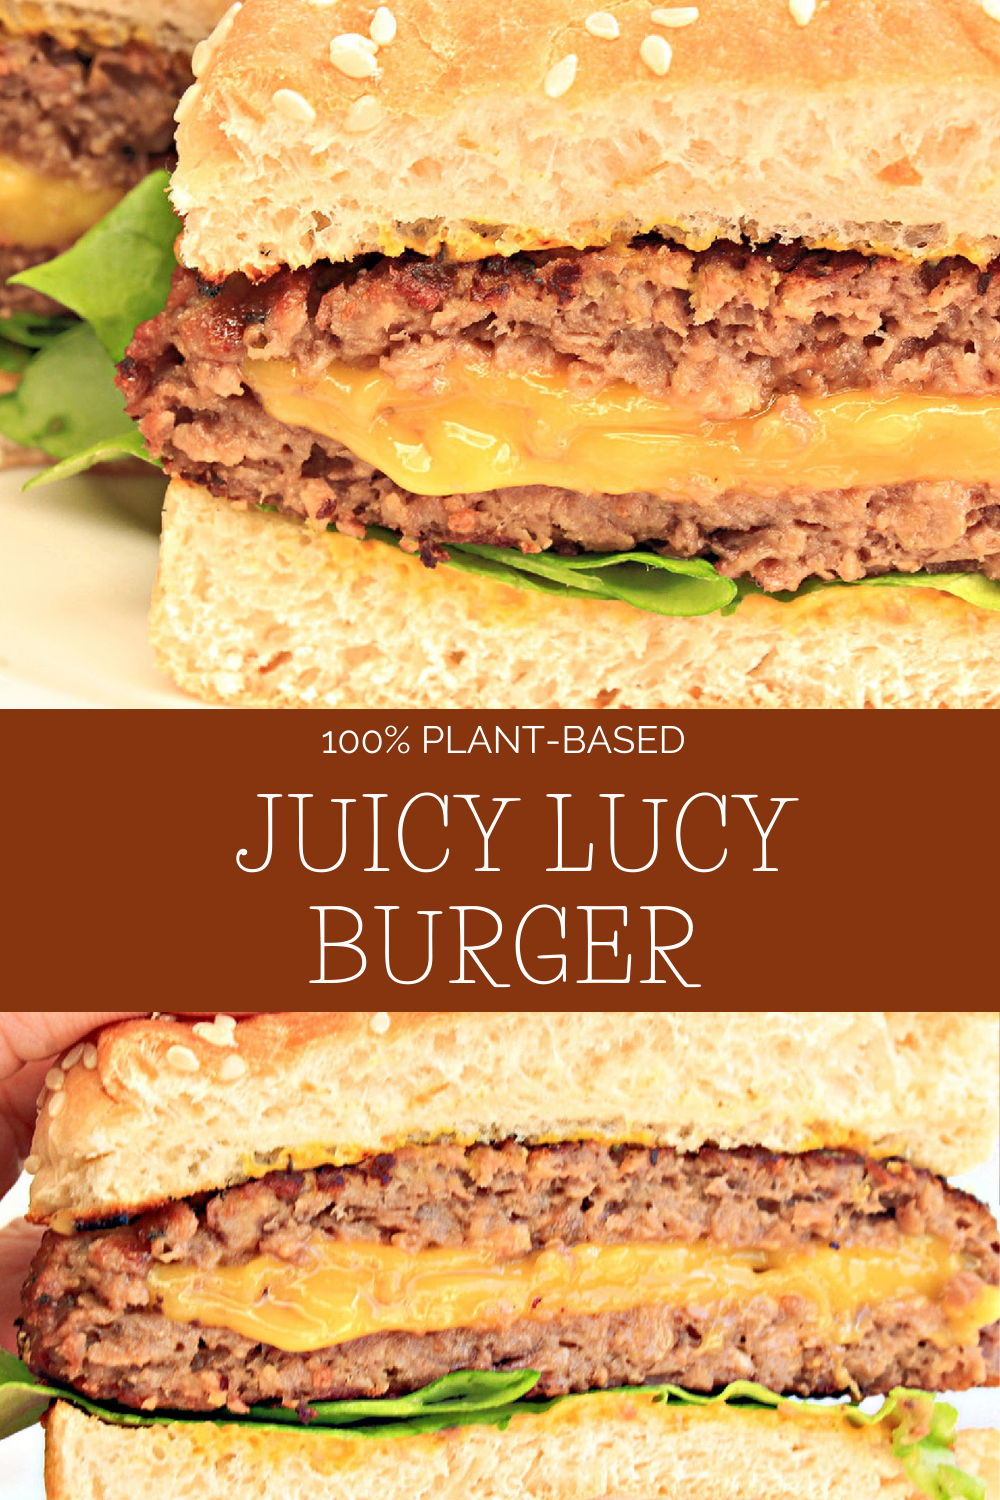 The iconic cheese-stuffed burger made with all plant-based ingredients! via @thiswifecooks